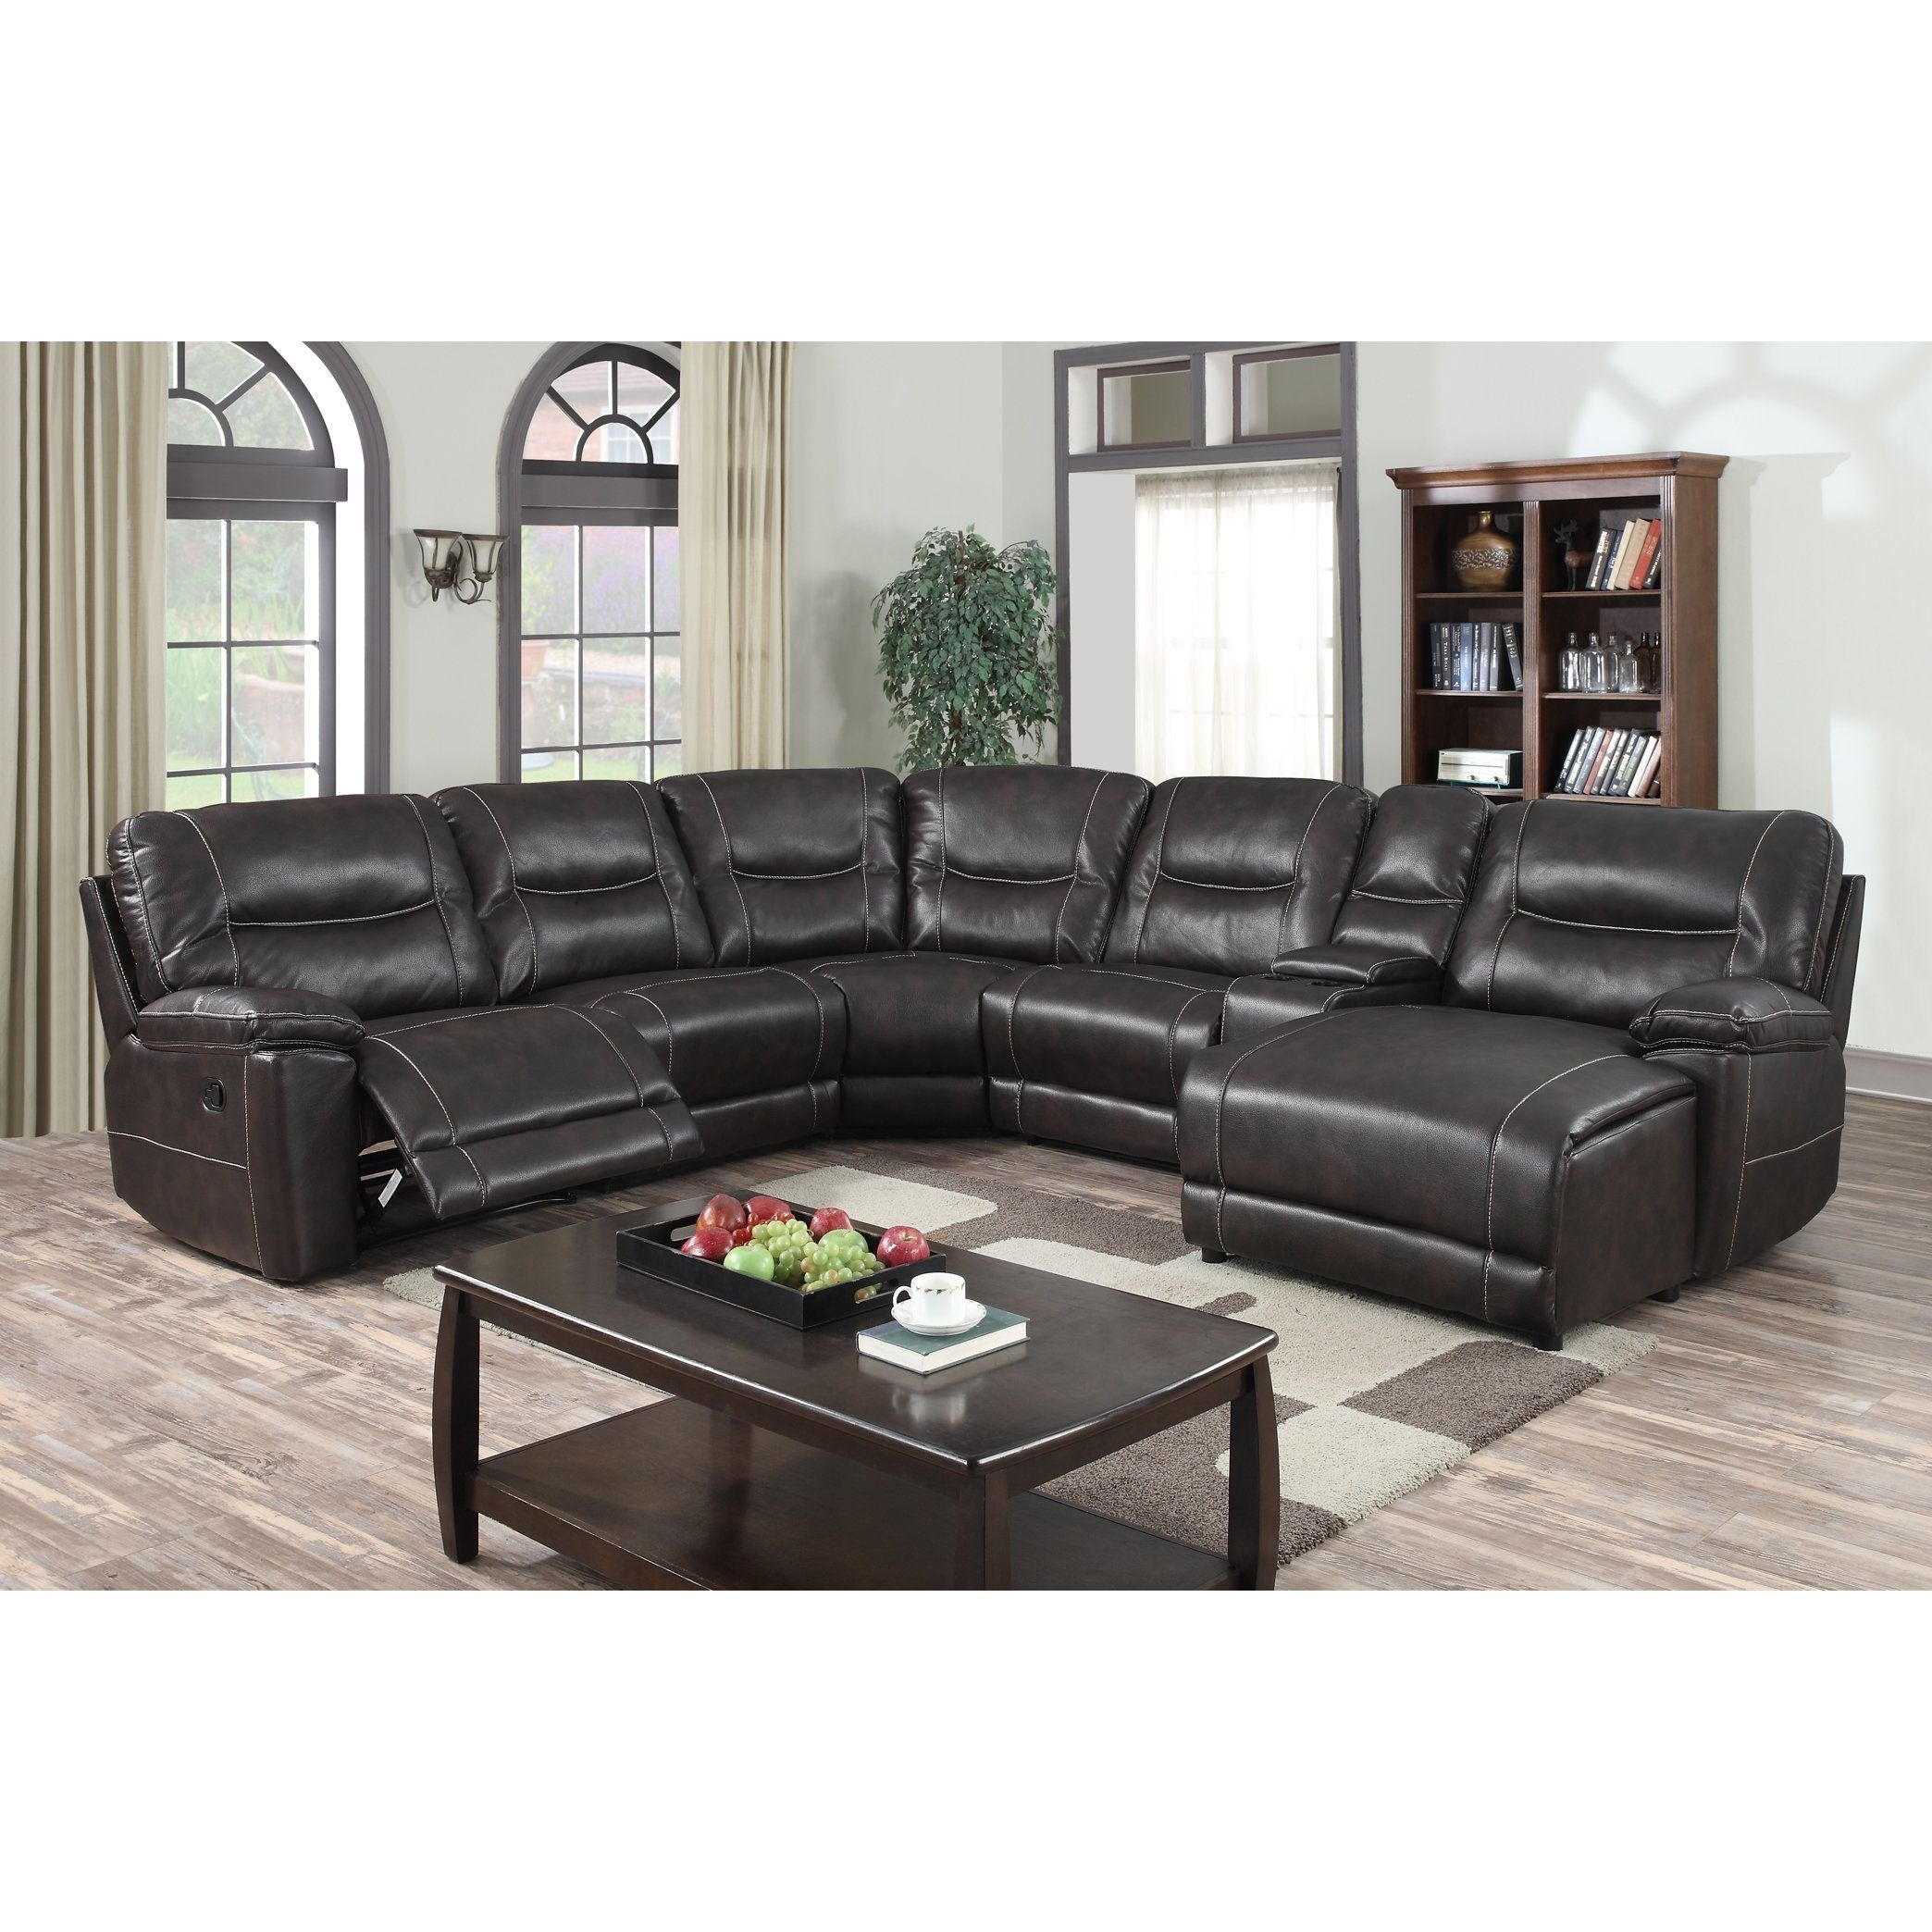 Christopher Reclining Sectional Collection Throughout Denali Charcoal Grey 6 Piece Reclining Sectionals With 2 Power Headrests (View 23 of 25)